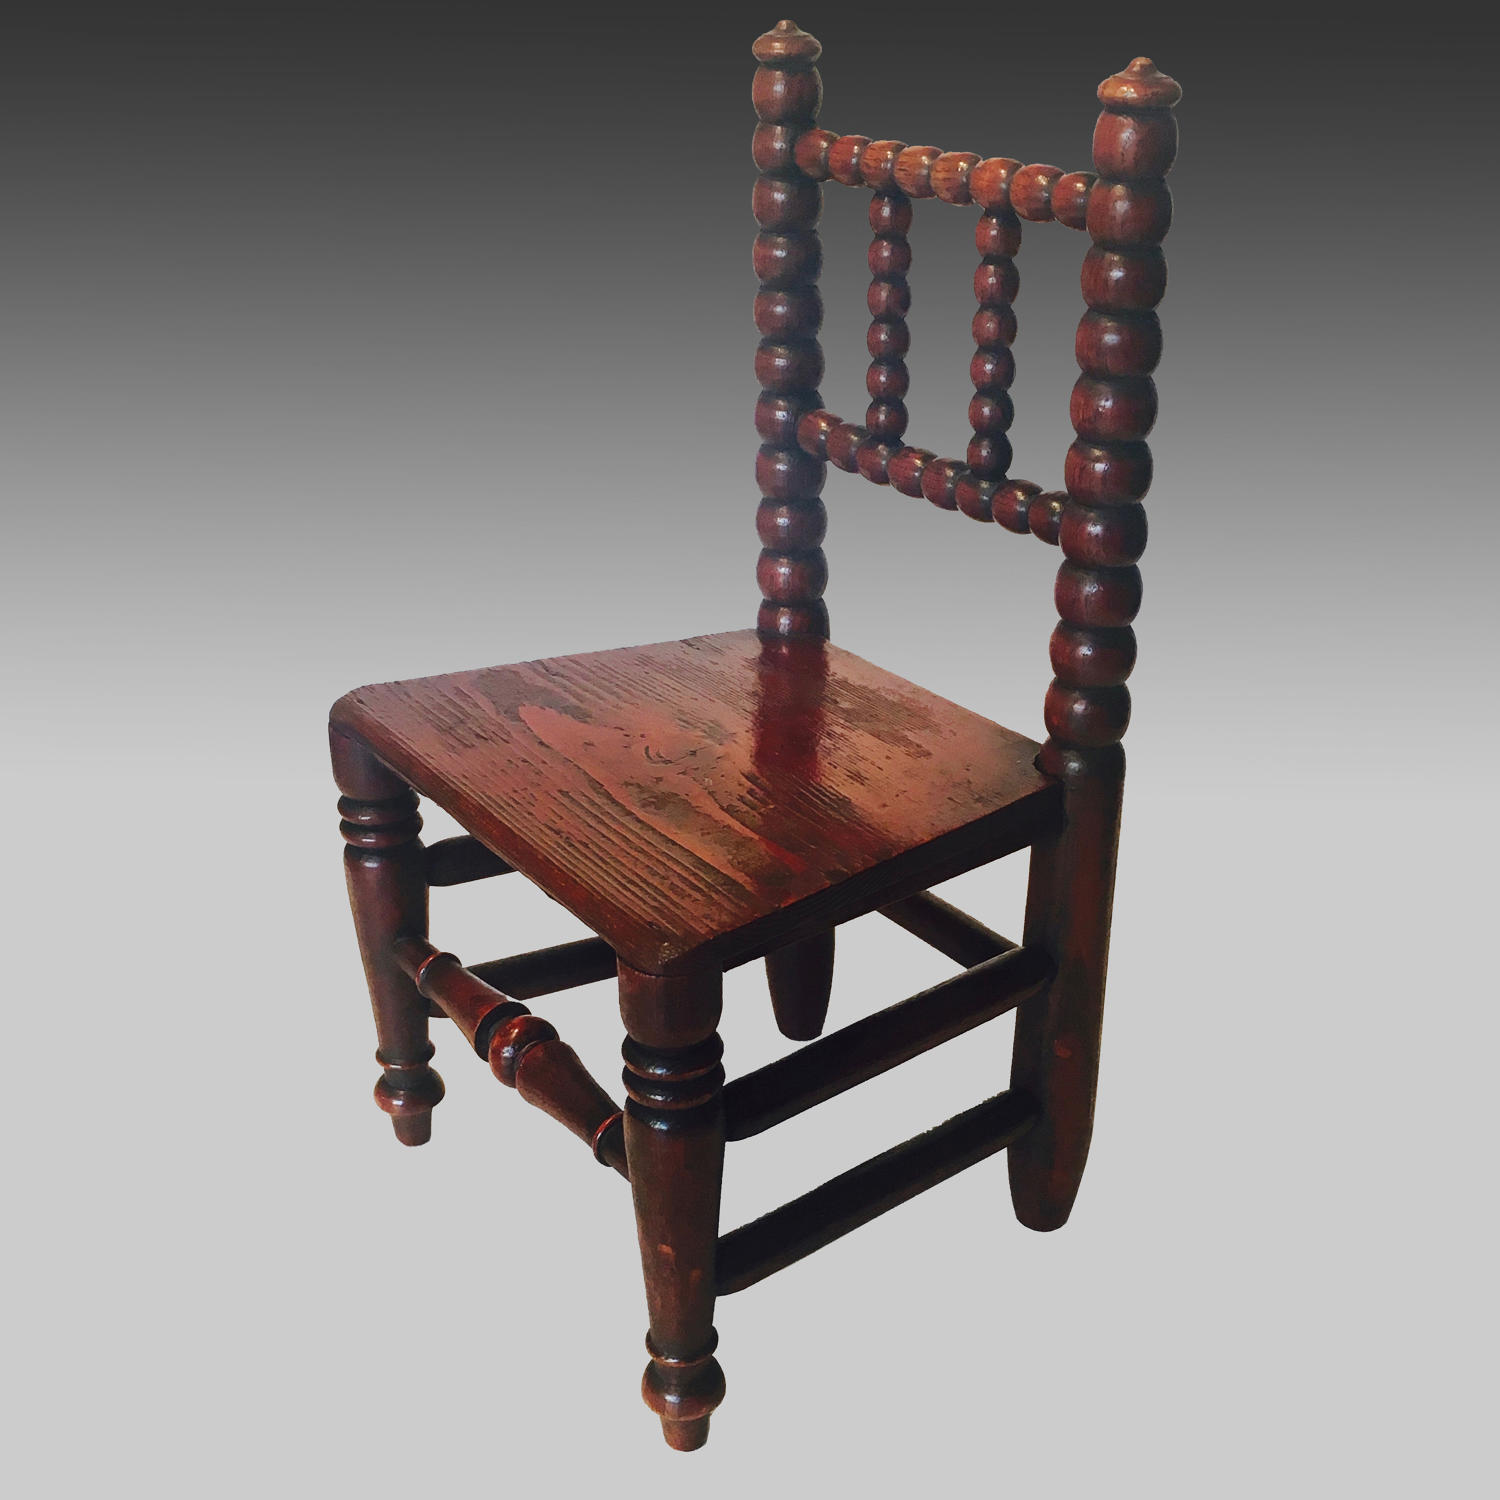 Miniature antique 19th century folk art turned chair